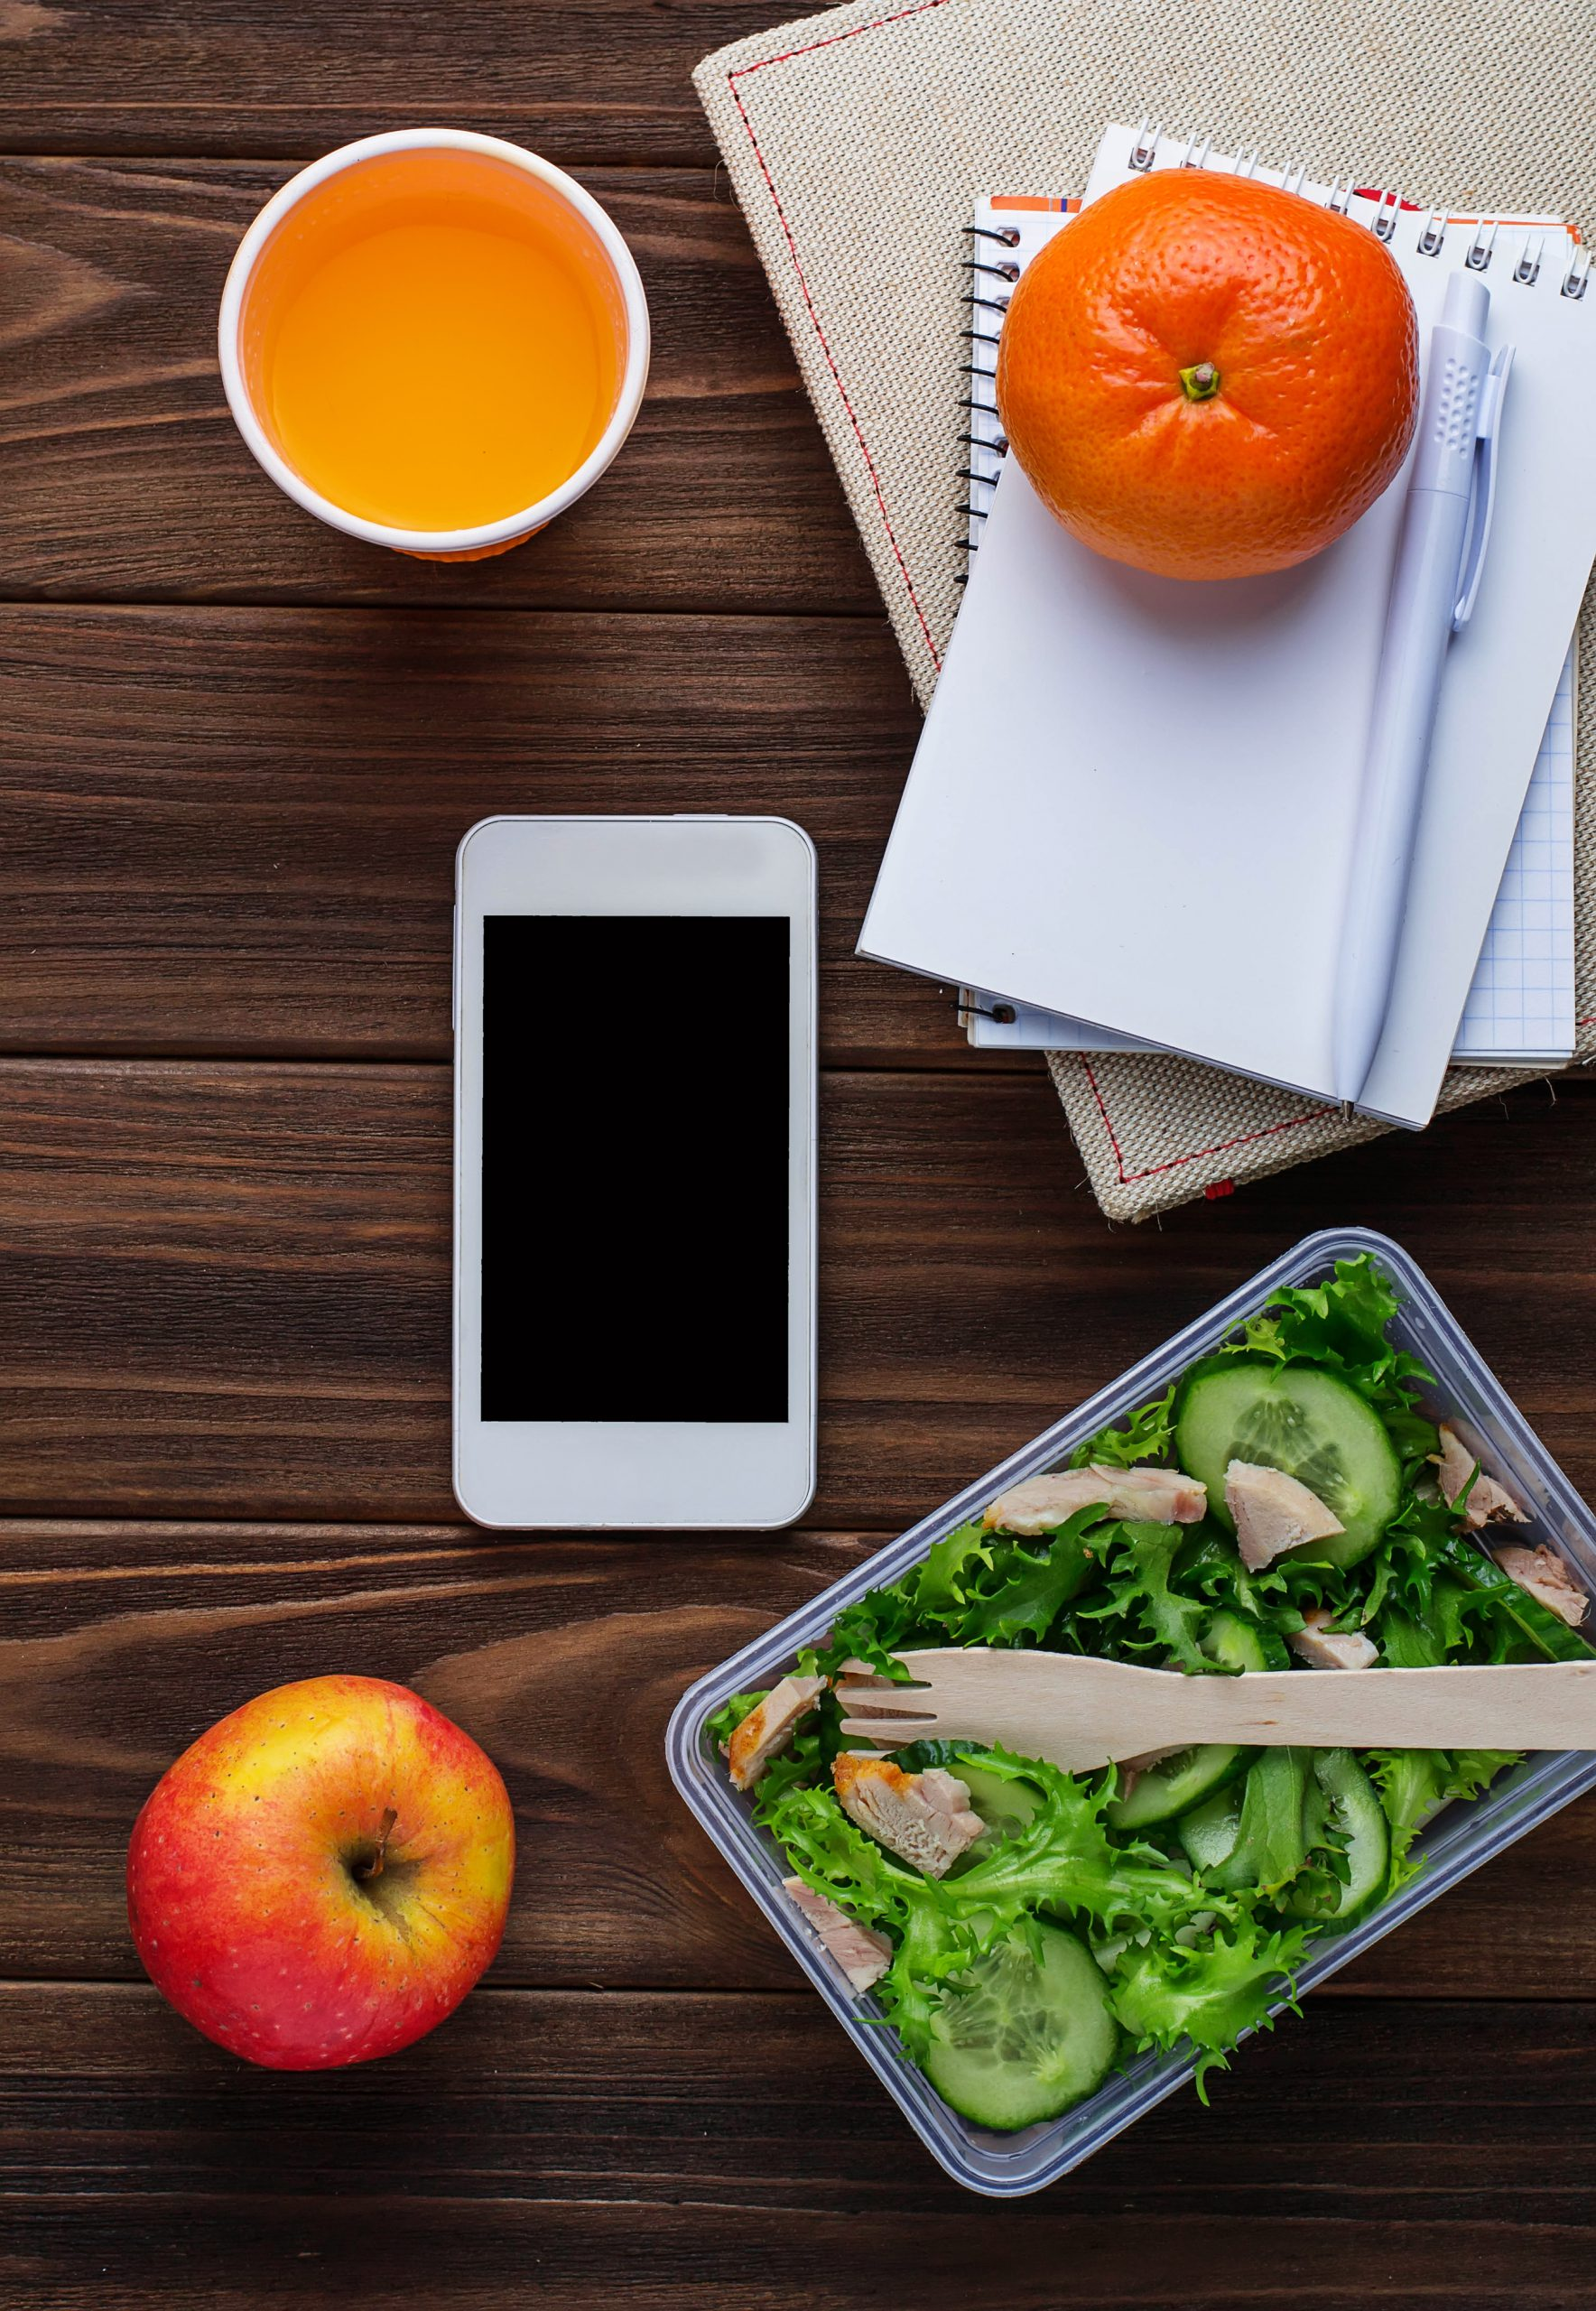 Lunch box with salad, notebook and phone